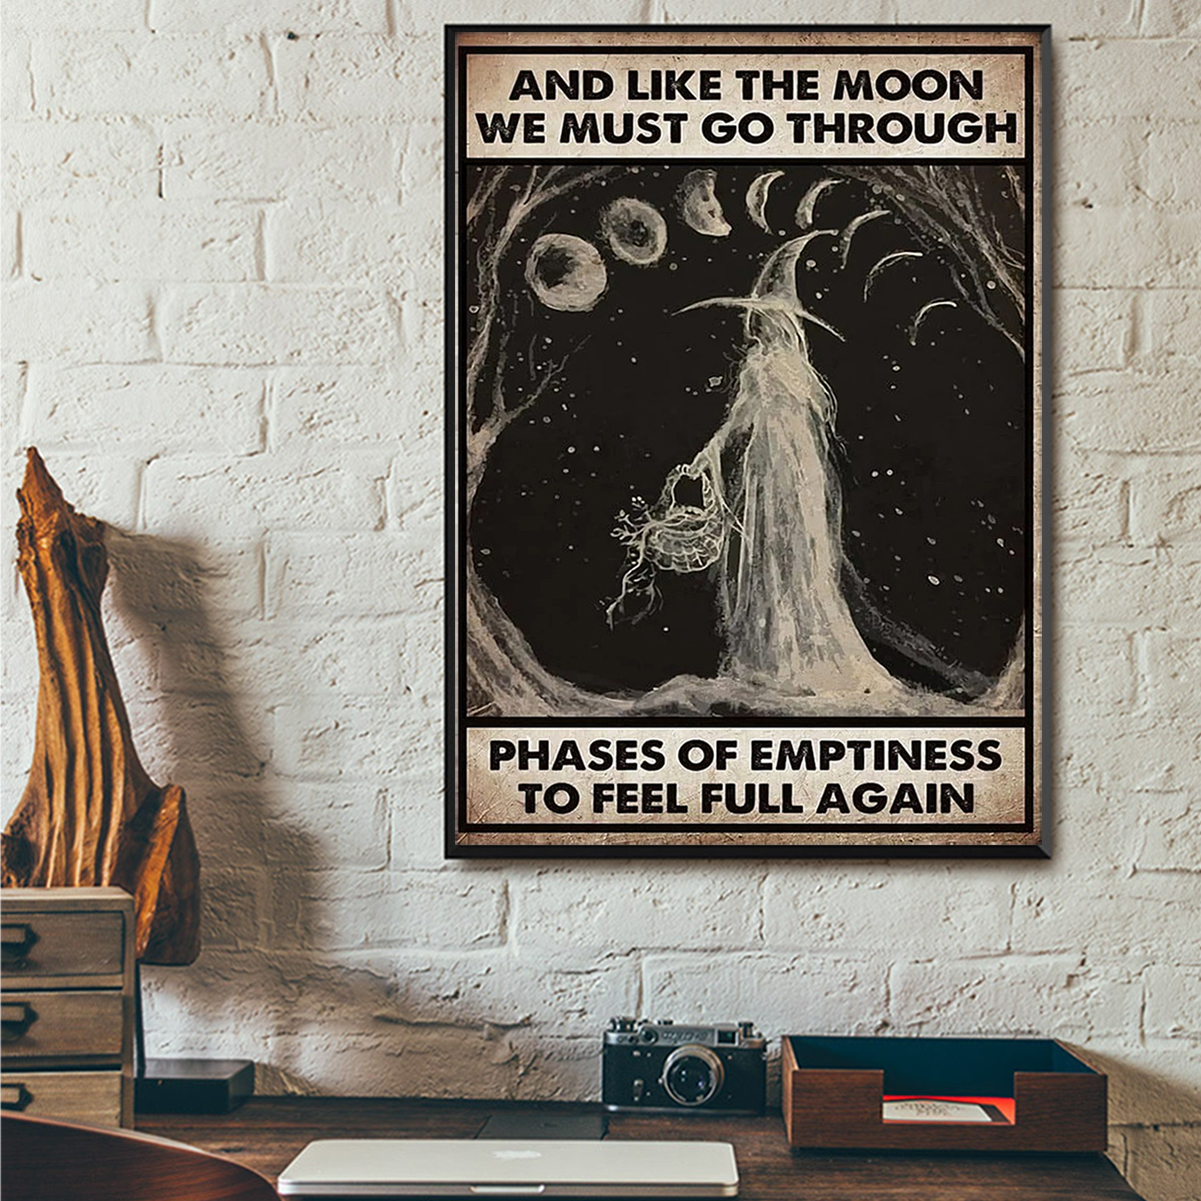 Witch And like the moon we must go through phases of emptiness to feel full again poster A3